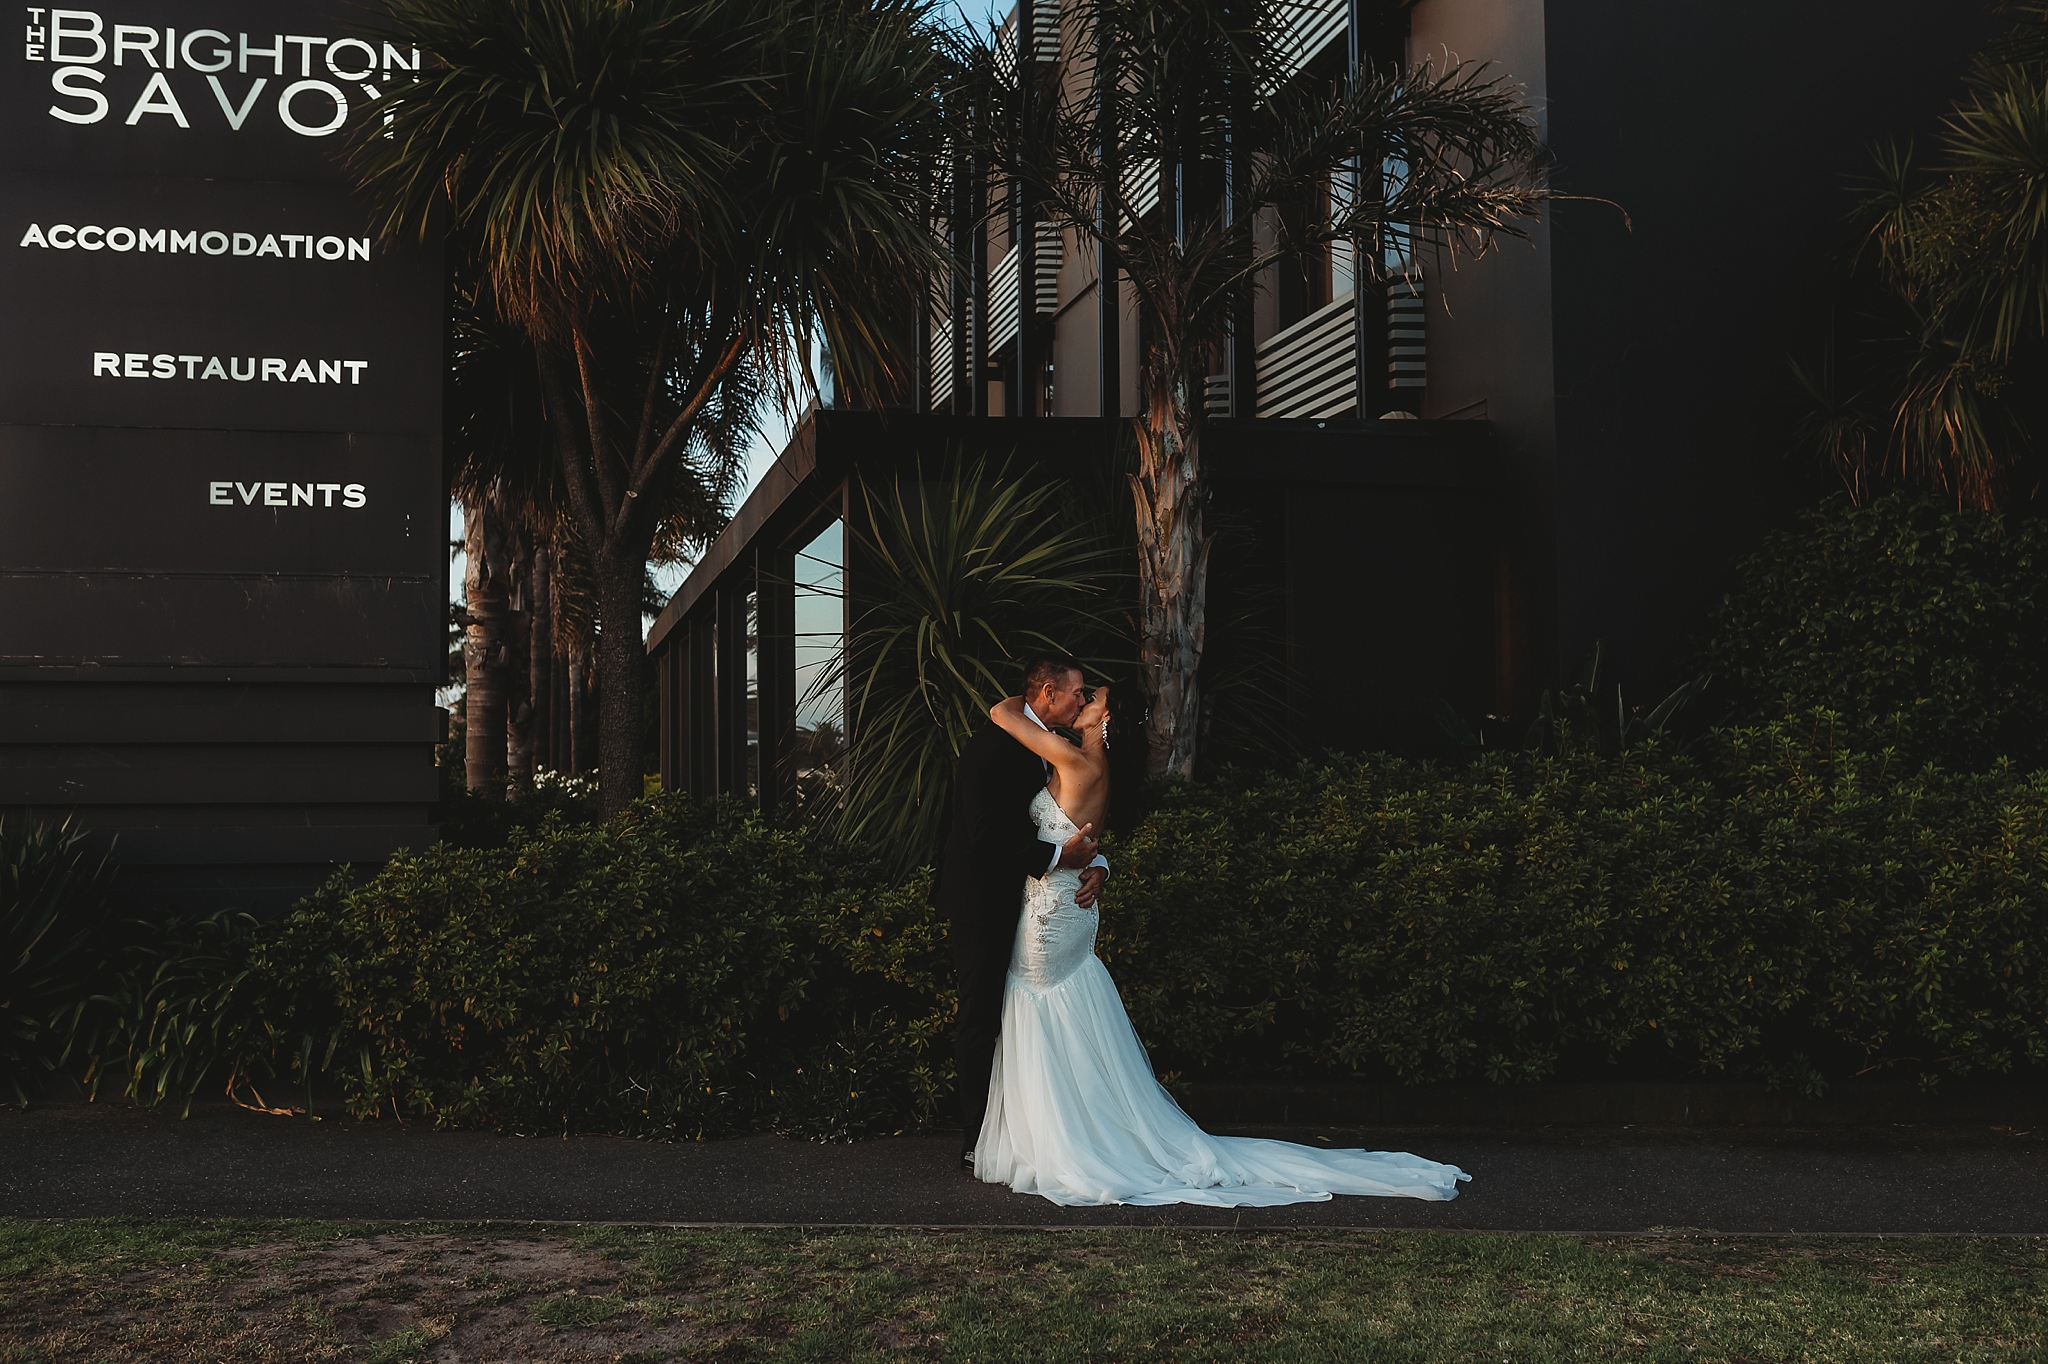 bride and groom posing at brighton savoy melbourne